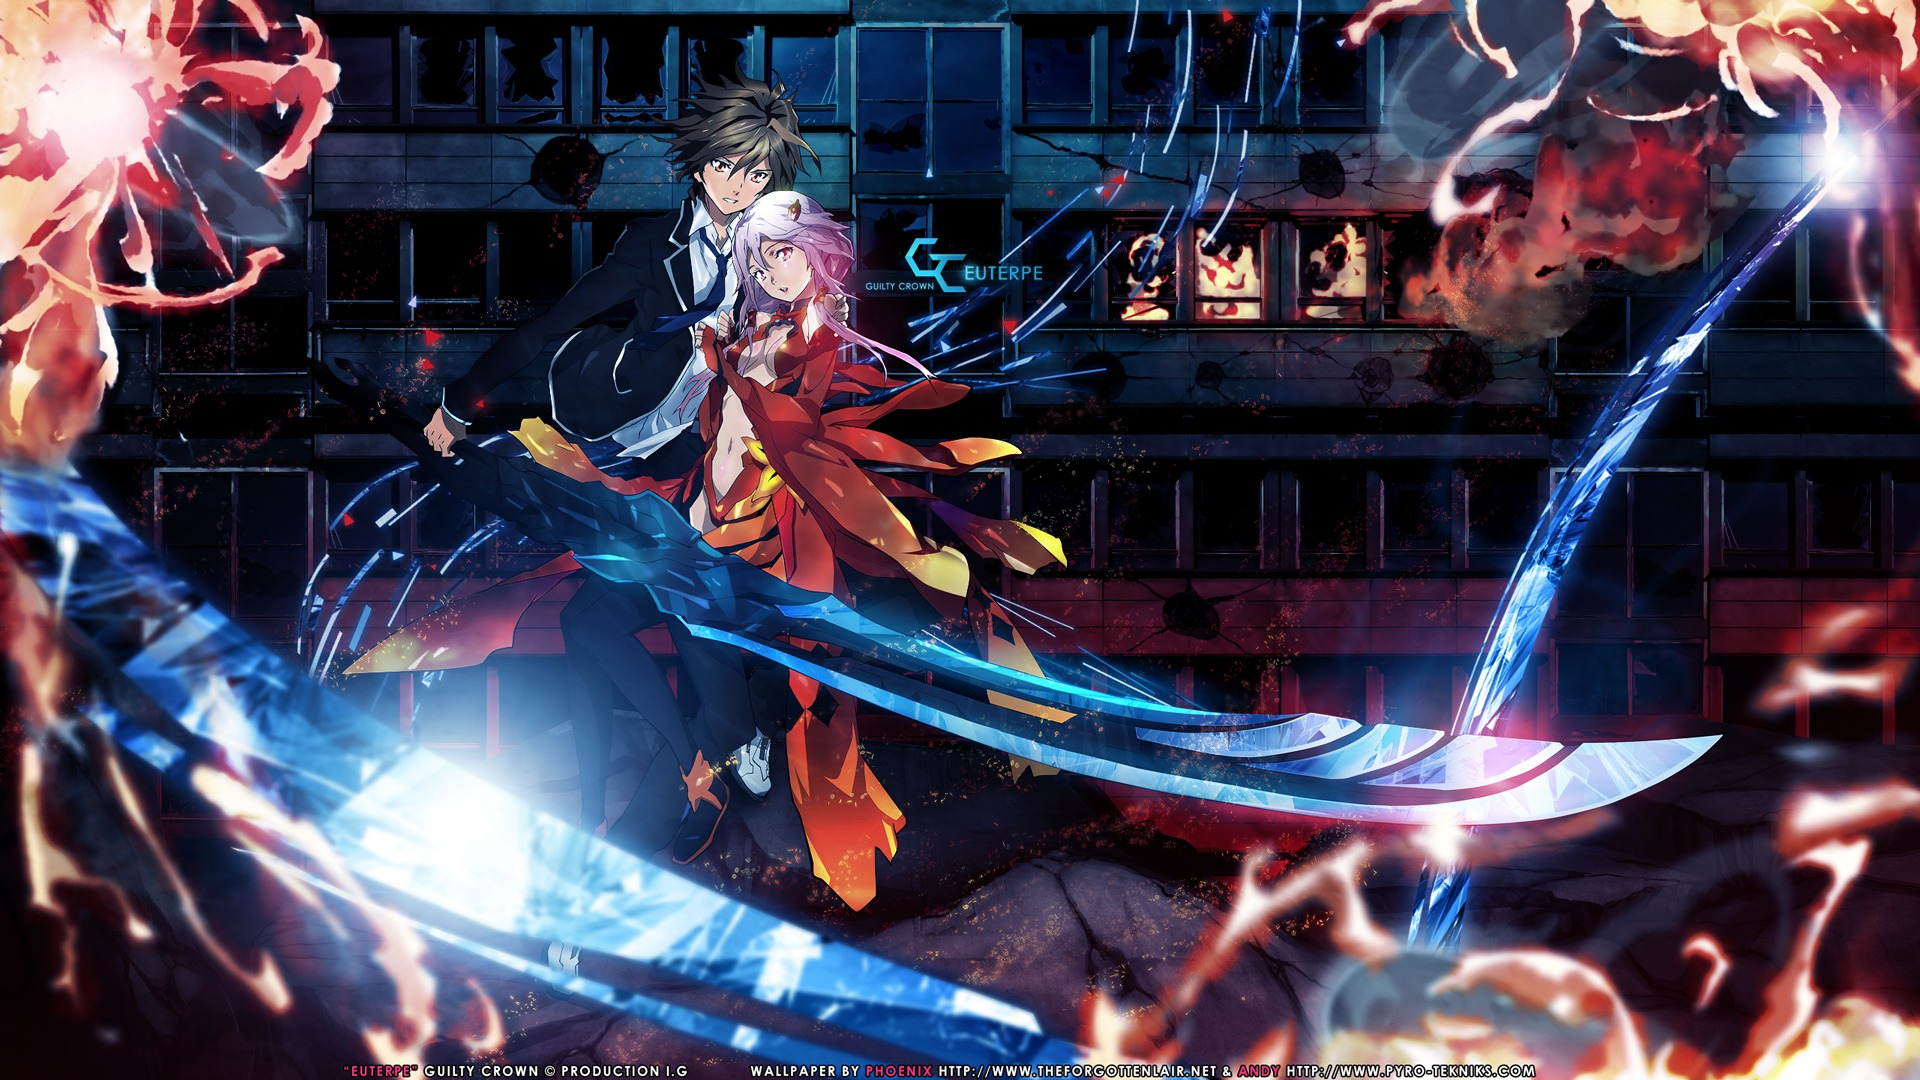 Guilty Crown Wallpaper Inori: Guilty Crown News